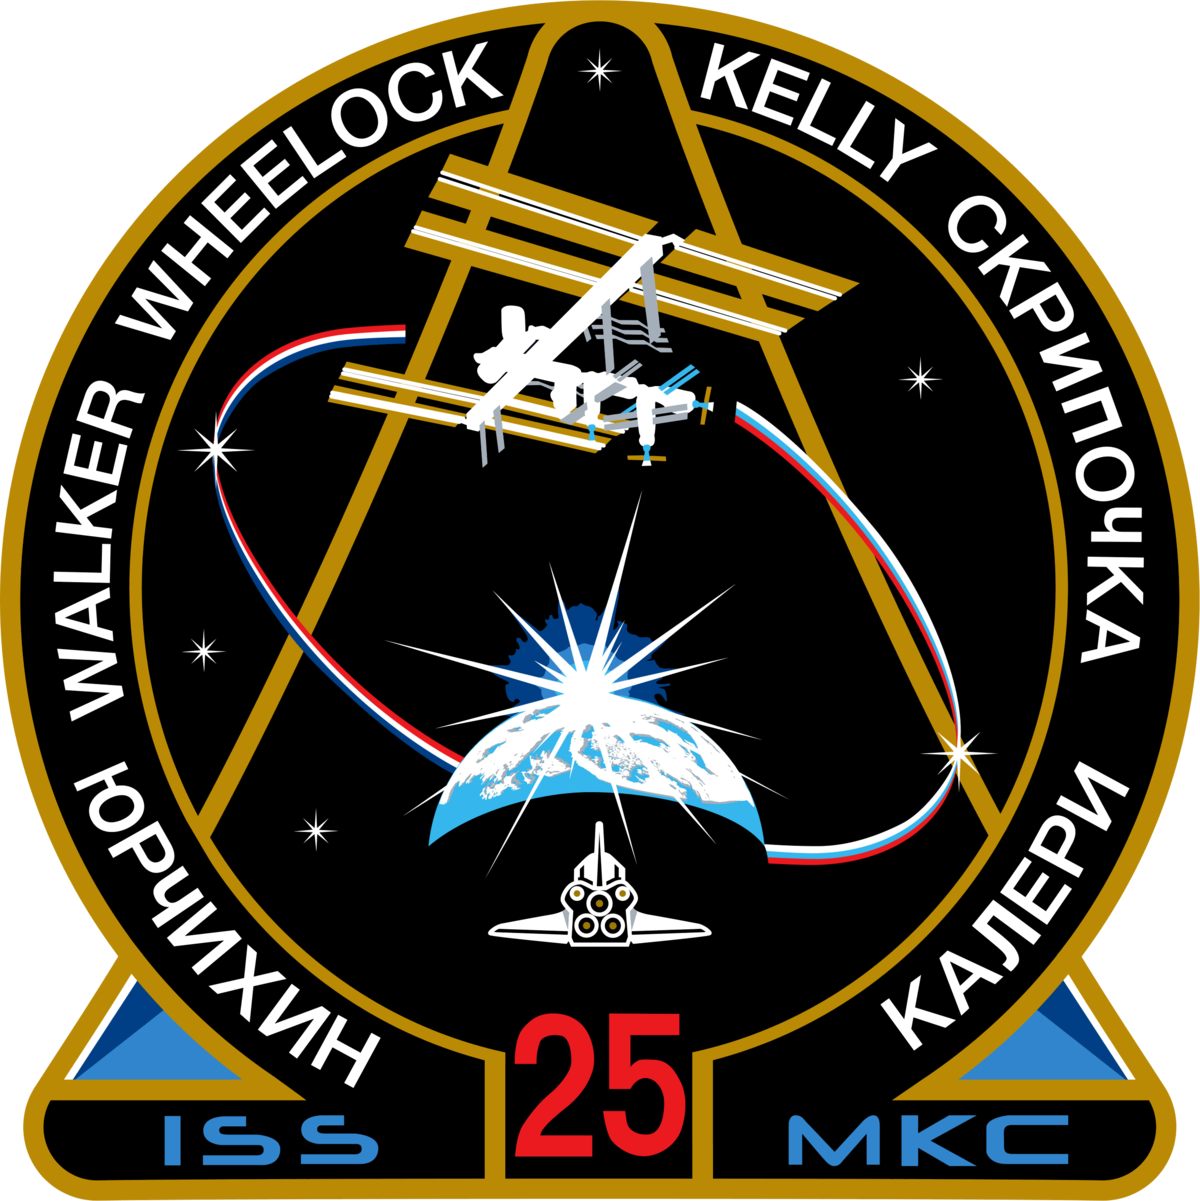 Mission Patches On Mission 4 To The International Space: Expedition 25